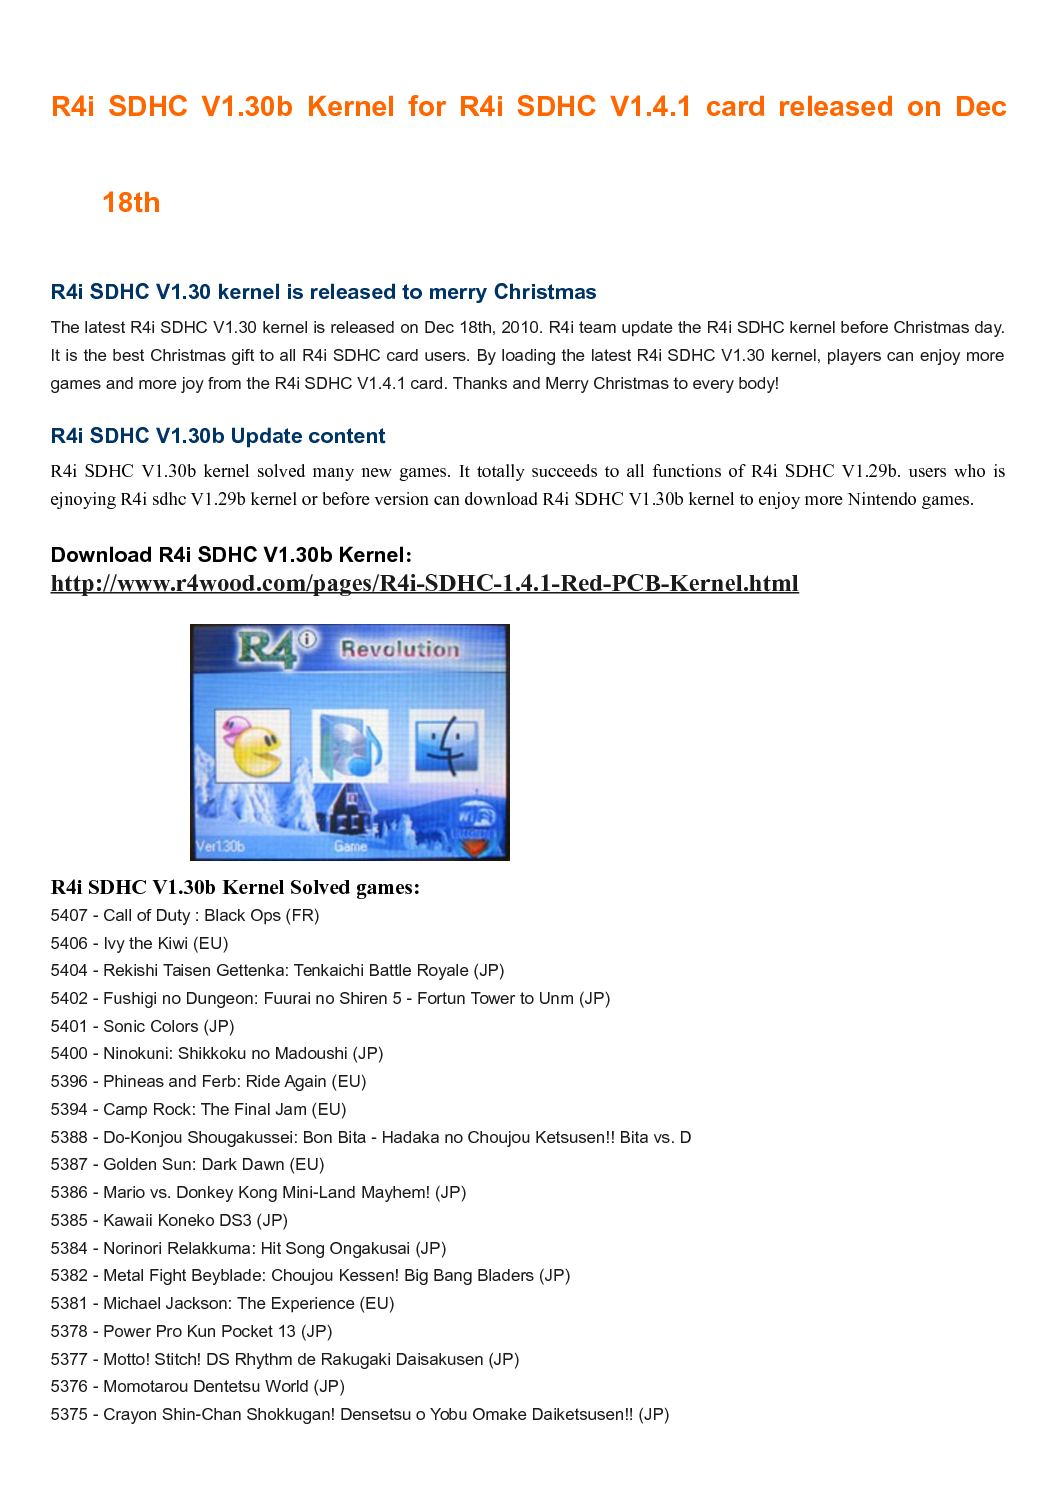 Calaméo - Latest R4i SDHC V1 30b kernel support more games in R4i